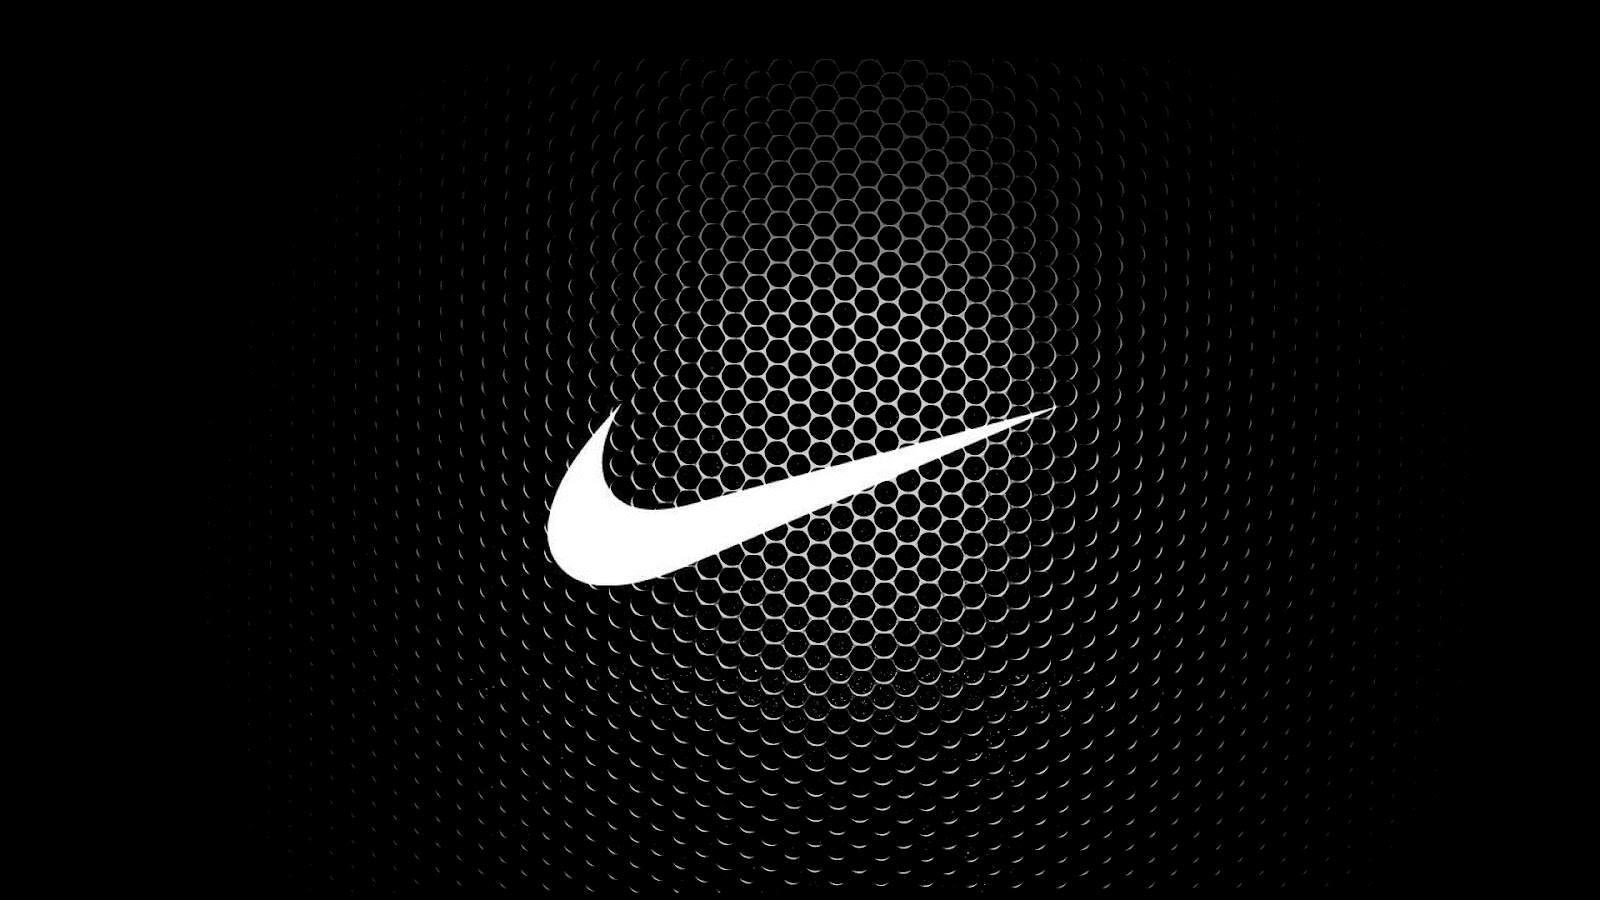 Nike Baseball Wallpapers Wallpaper Cave